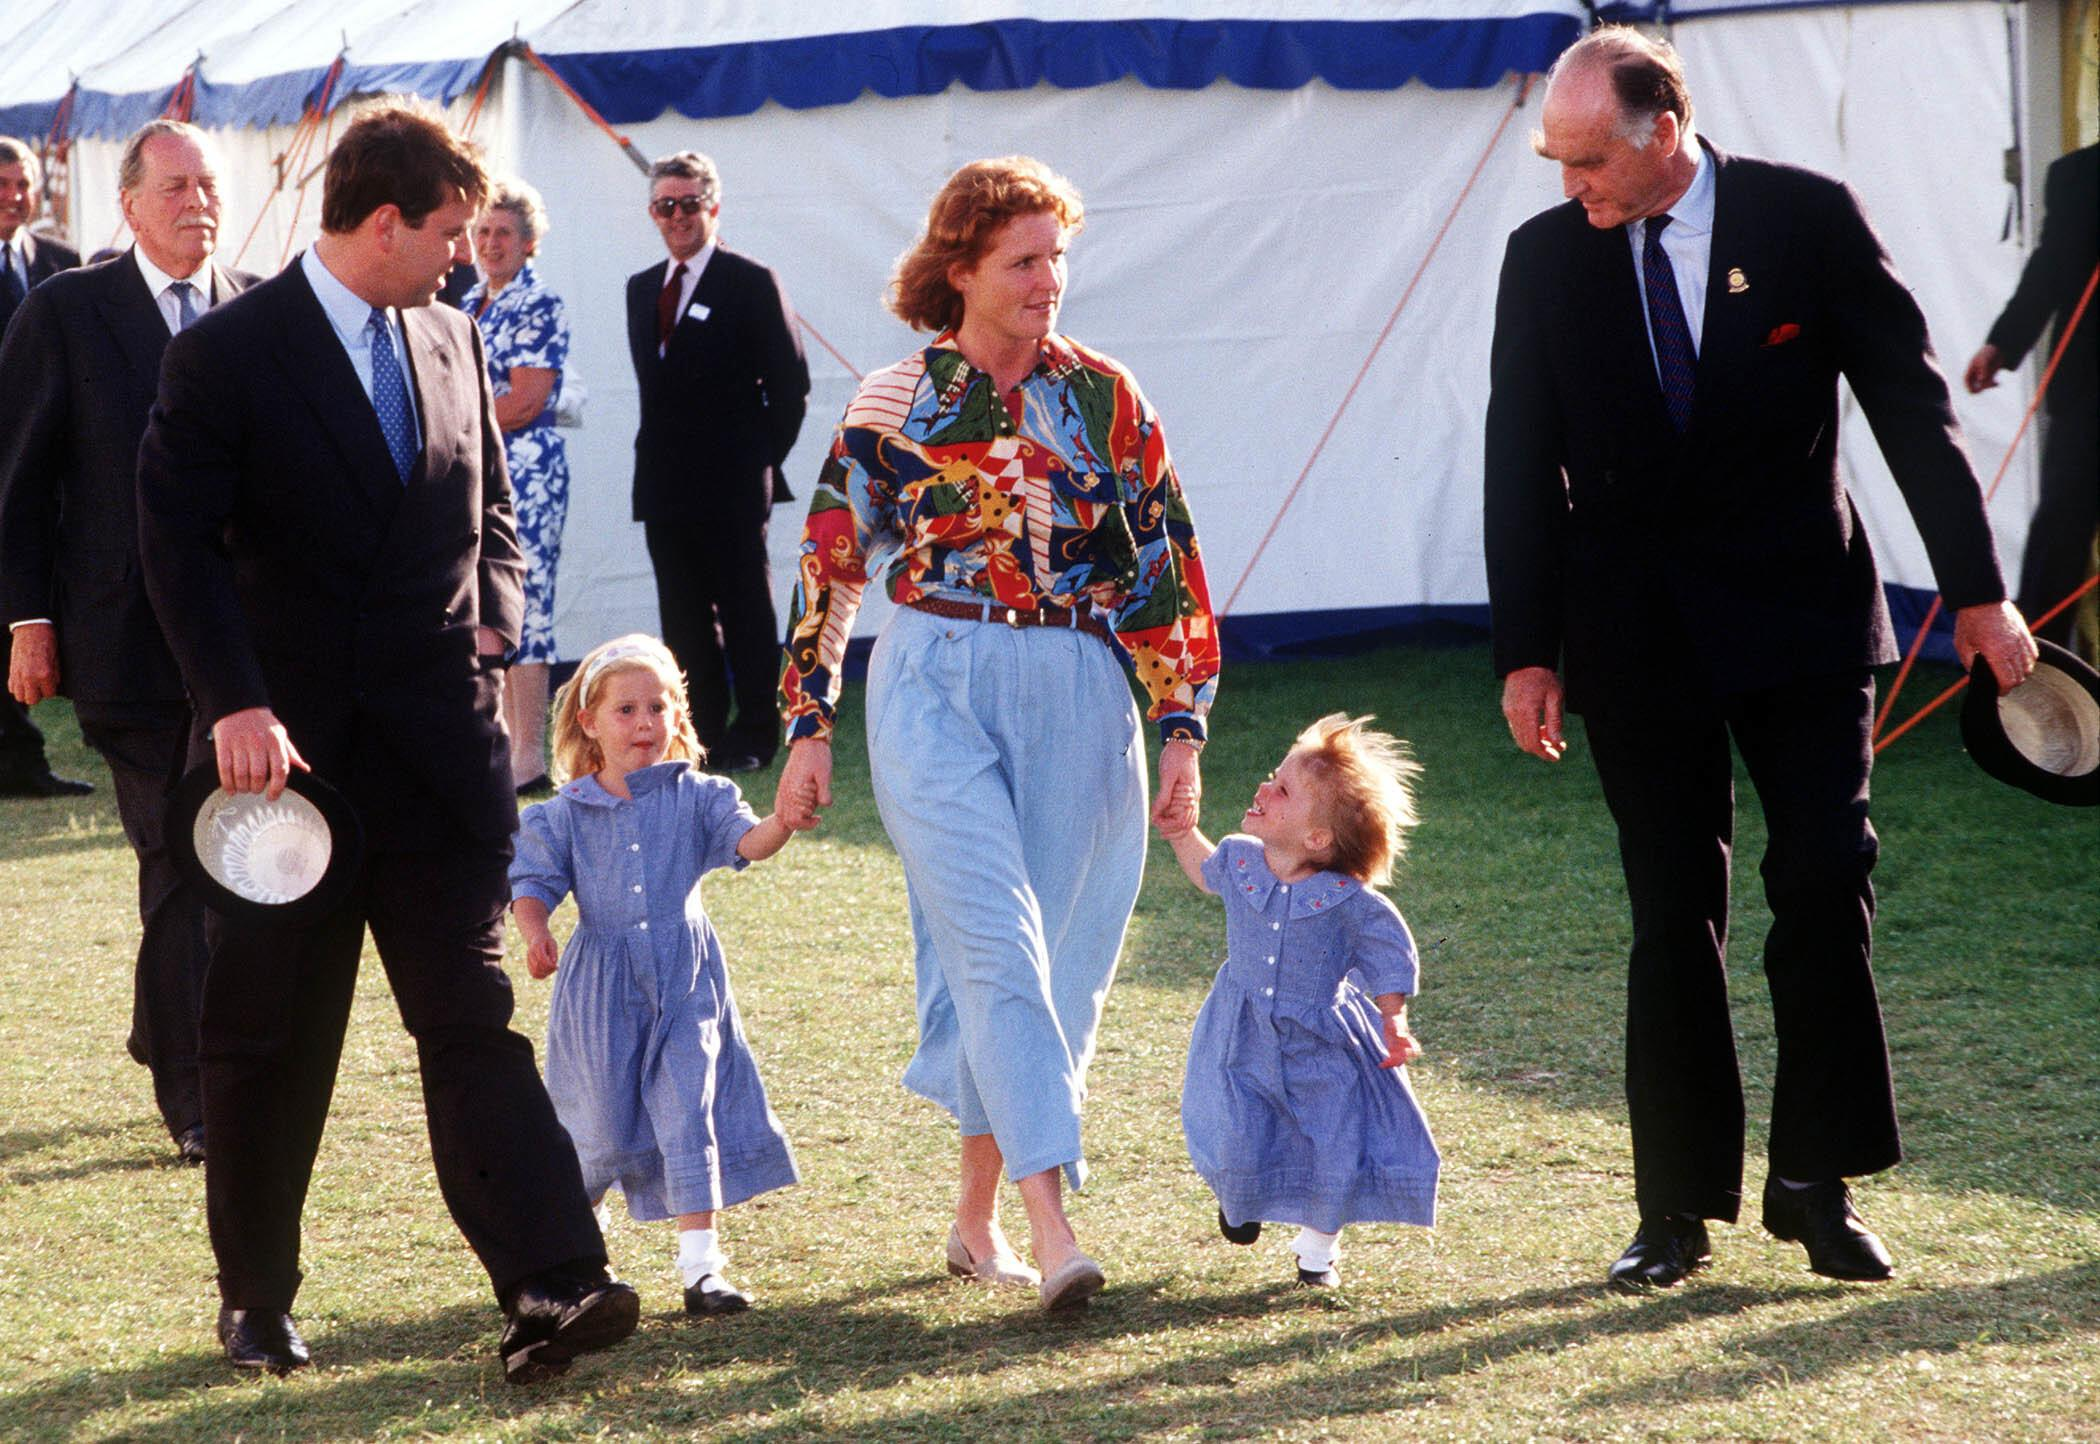 Major Ron Ferguson walks with his daughter, Sarah Ferguson, Prince Andrew and their children, Beatrice and Eugenie, at Windsor Horse show. Full length, suit, blue dress, children, royals ©Anwar Hussein/allaction.co.uk